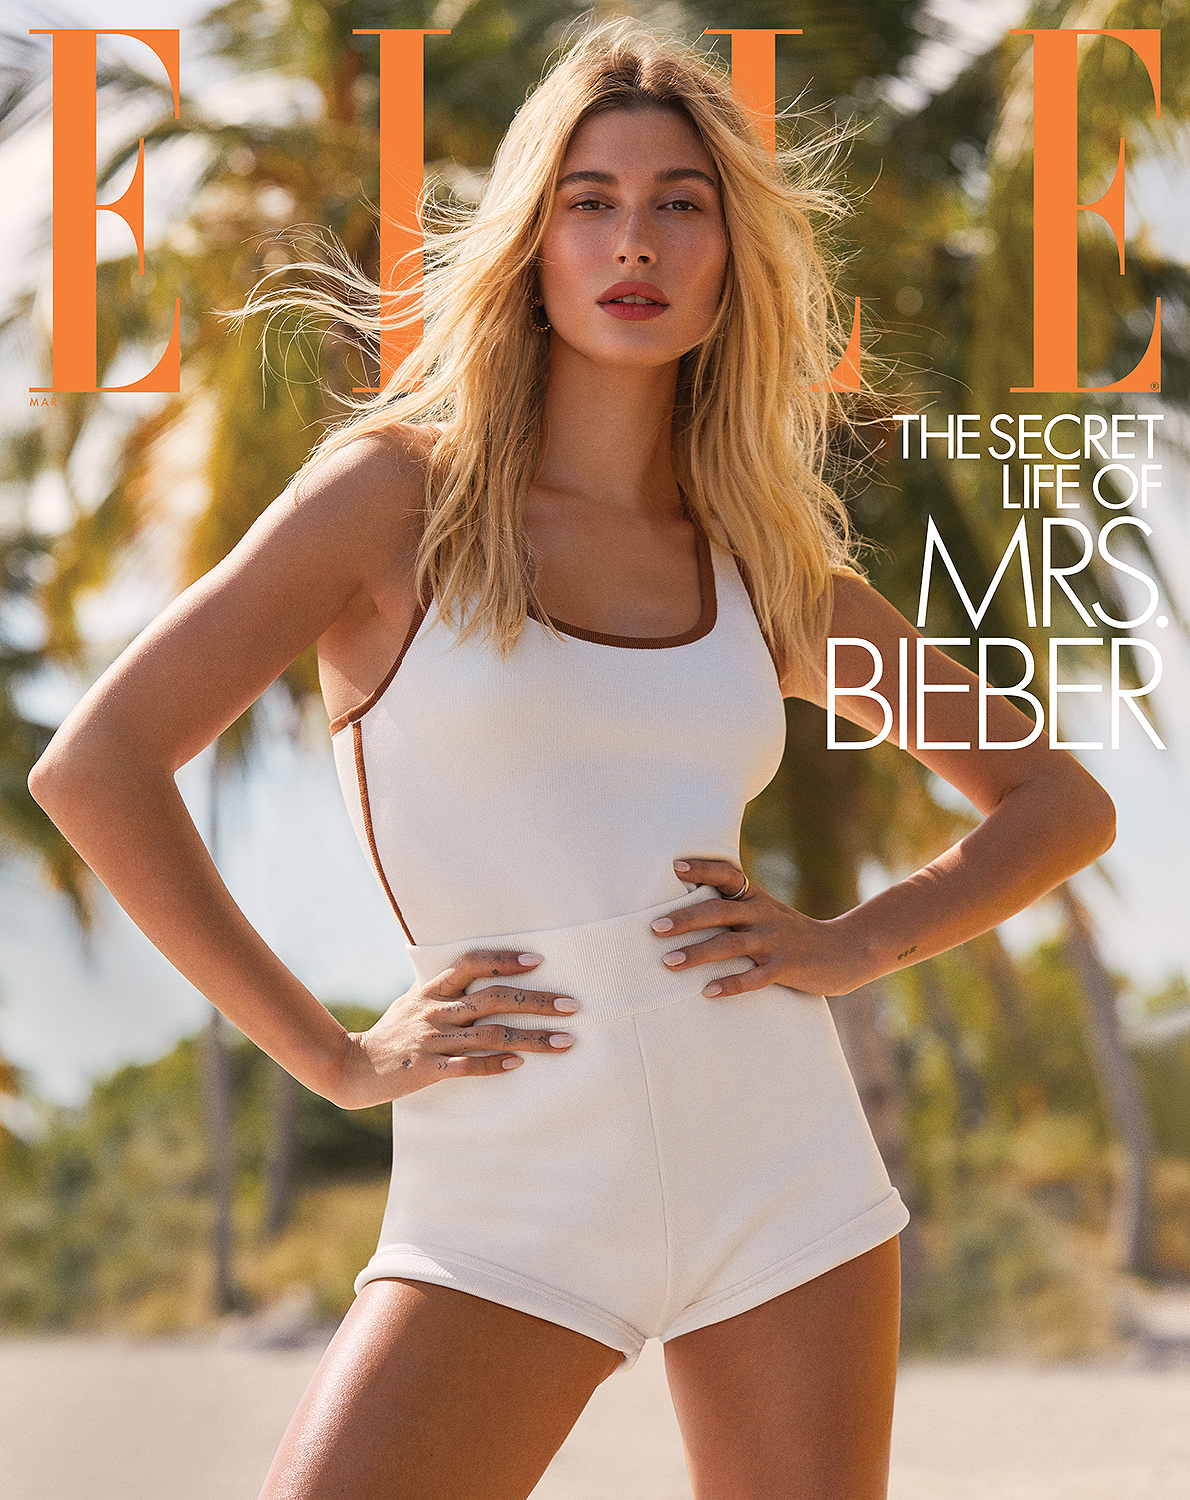 Hailey Bieber covers the March issue of ELLE